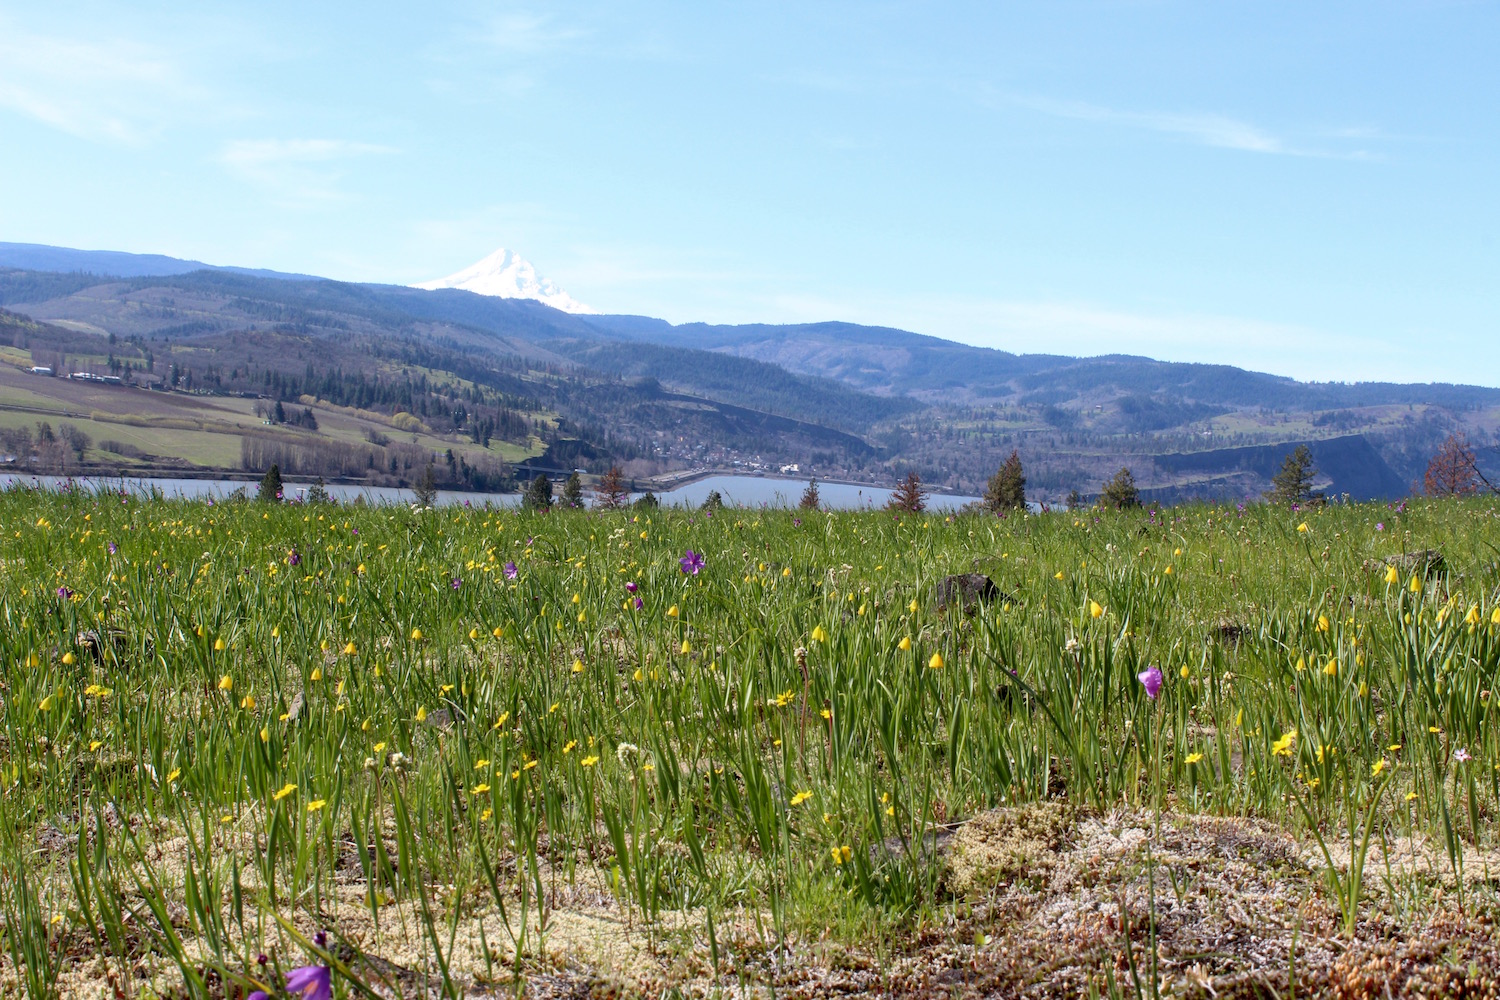 Catherine Creek on the Washington side of the Columbia River is one of the first spots for spring flowers in the Gorge. Yellow Bells & Grass Widows are the first flowers to appear. Mt. Hood in Oregon overlooks the Gorge.